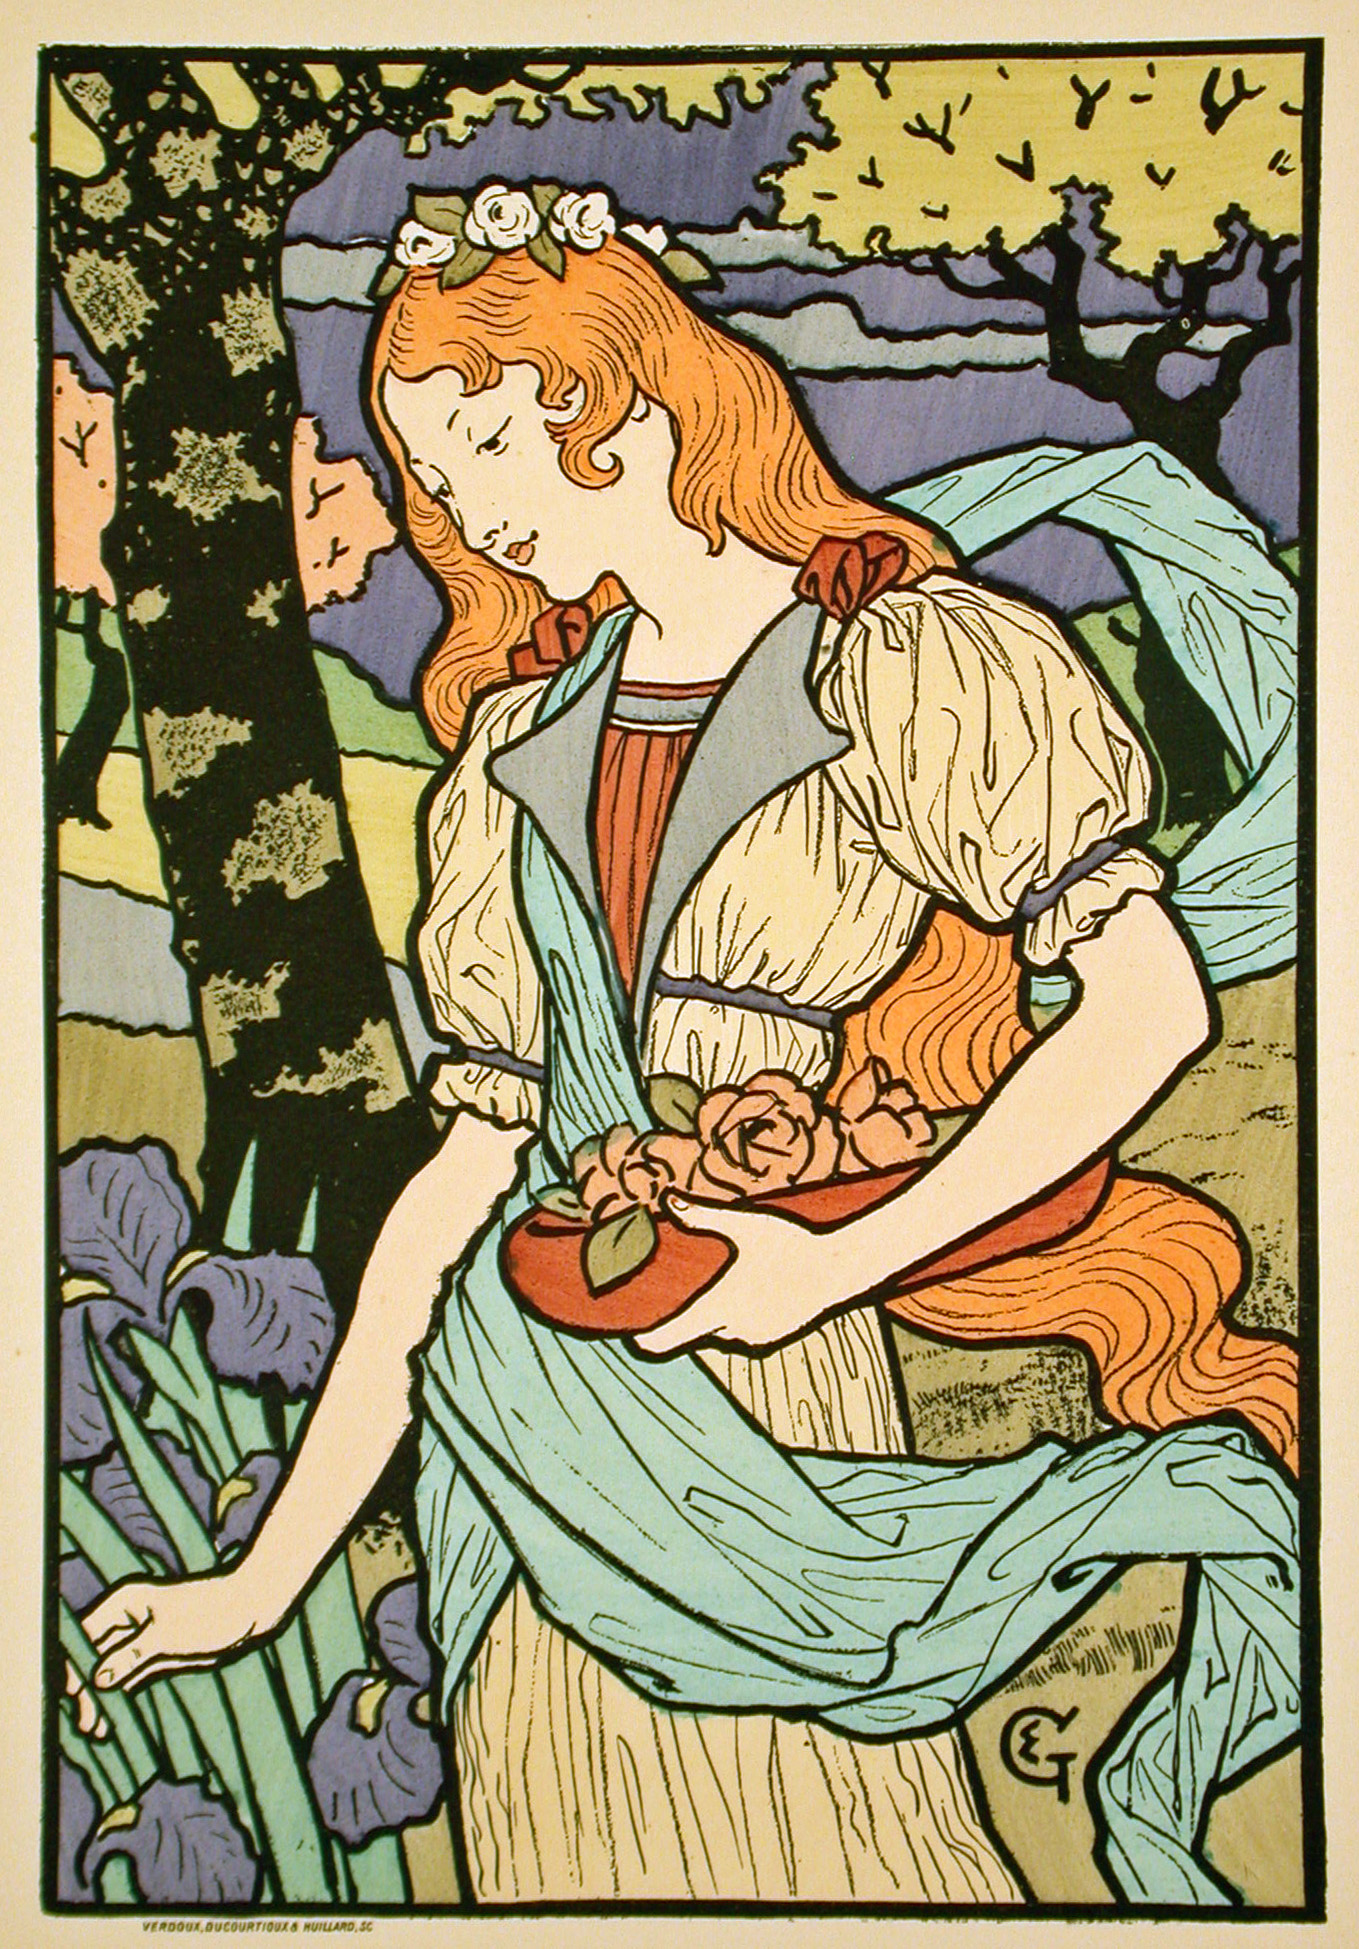 Art Nouveau Wikipedia File Art Nouveau Composition Jpg Wikimedia Commons